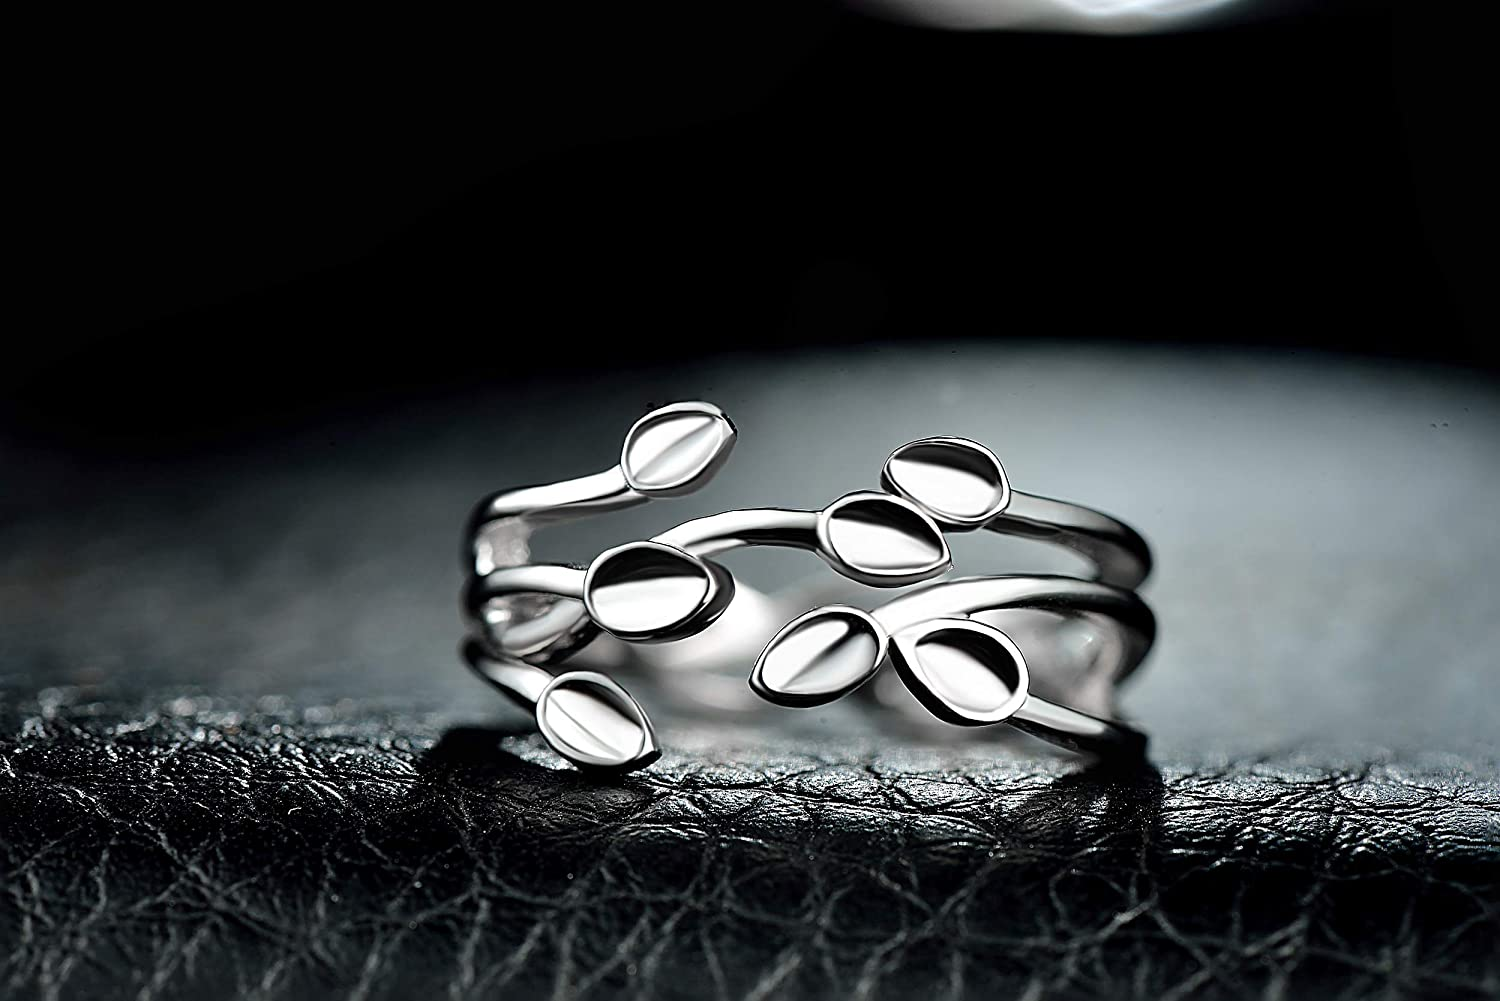 Weight About 2.4 g. FHX Individual Flower S925 Sterling Silver Ring Female Opening Adjustable Ring Fashion Jewelry Craft: Polished Material: S925 Silver